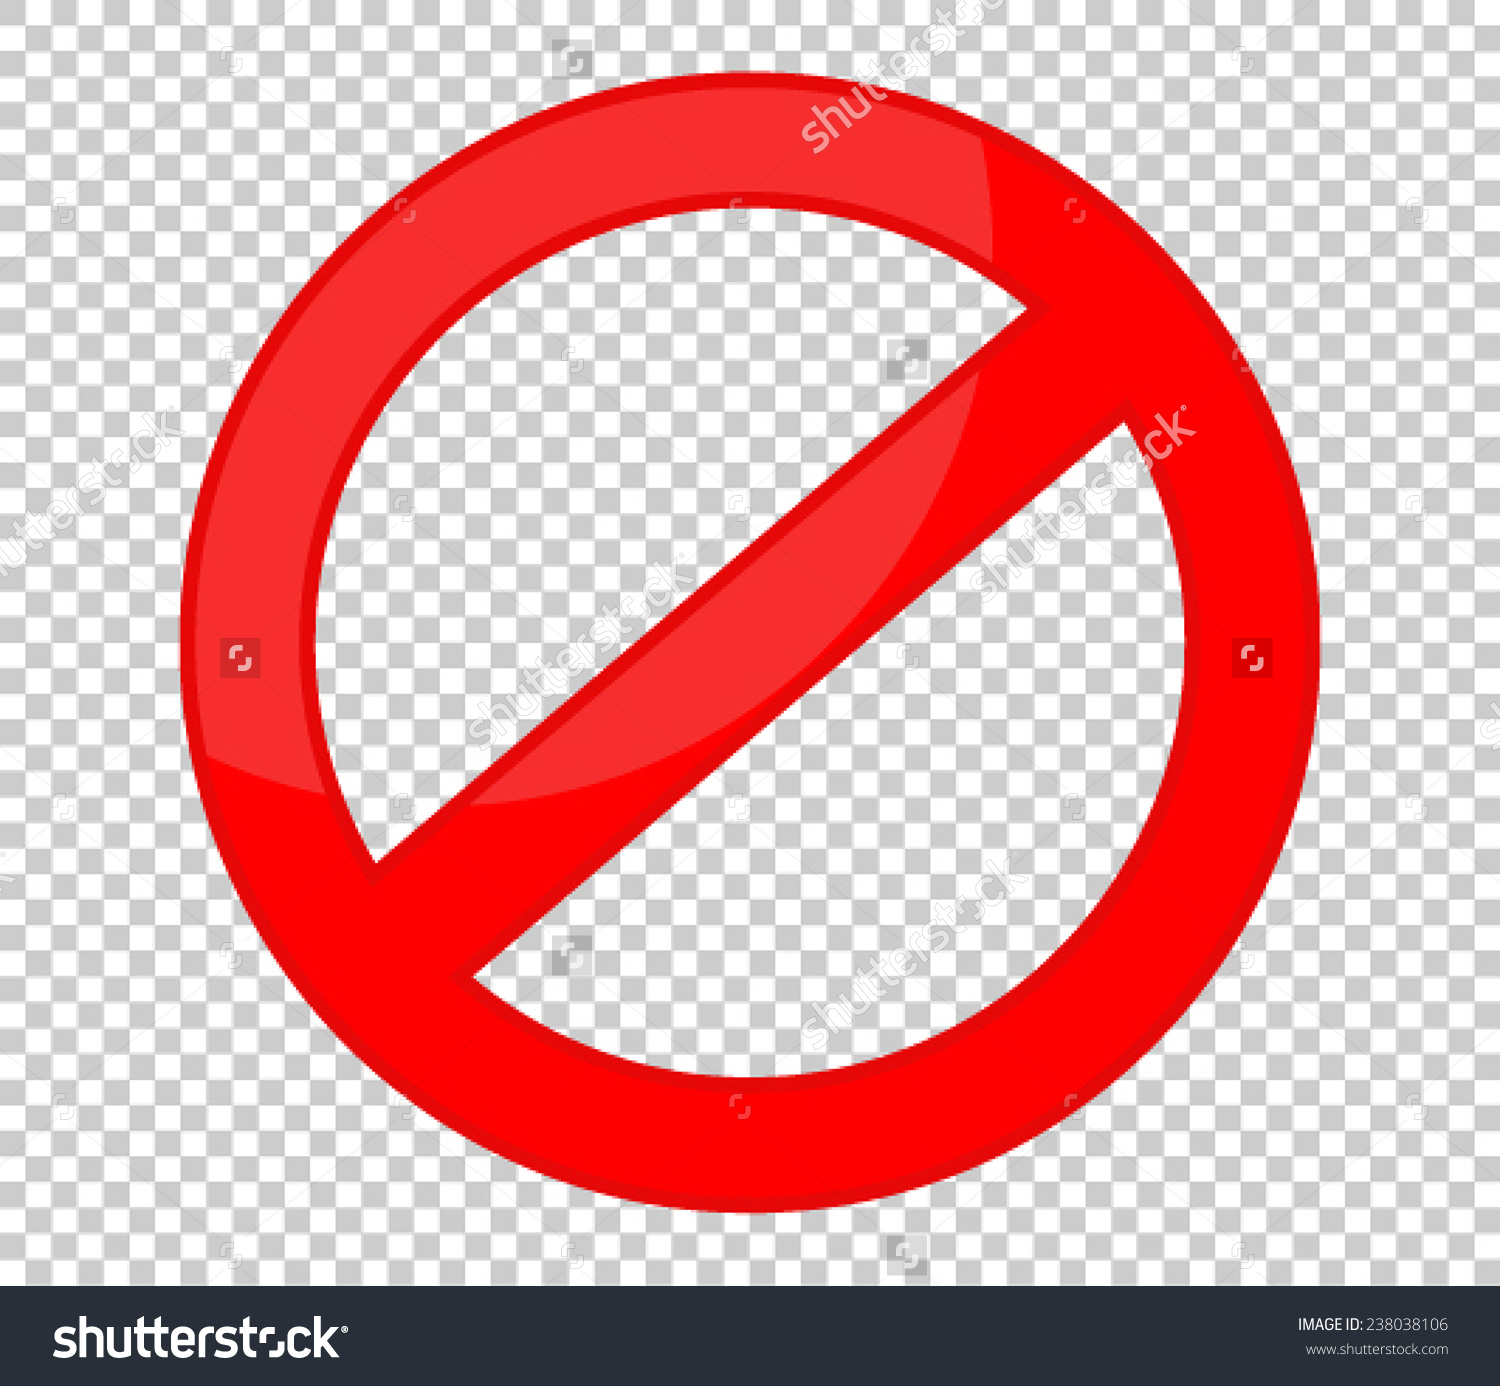 Not allowed clipart 20 free Cliparts | Download images on ...